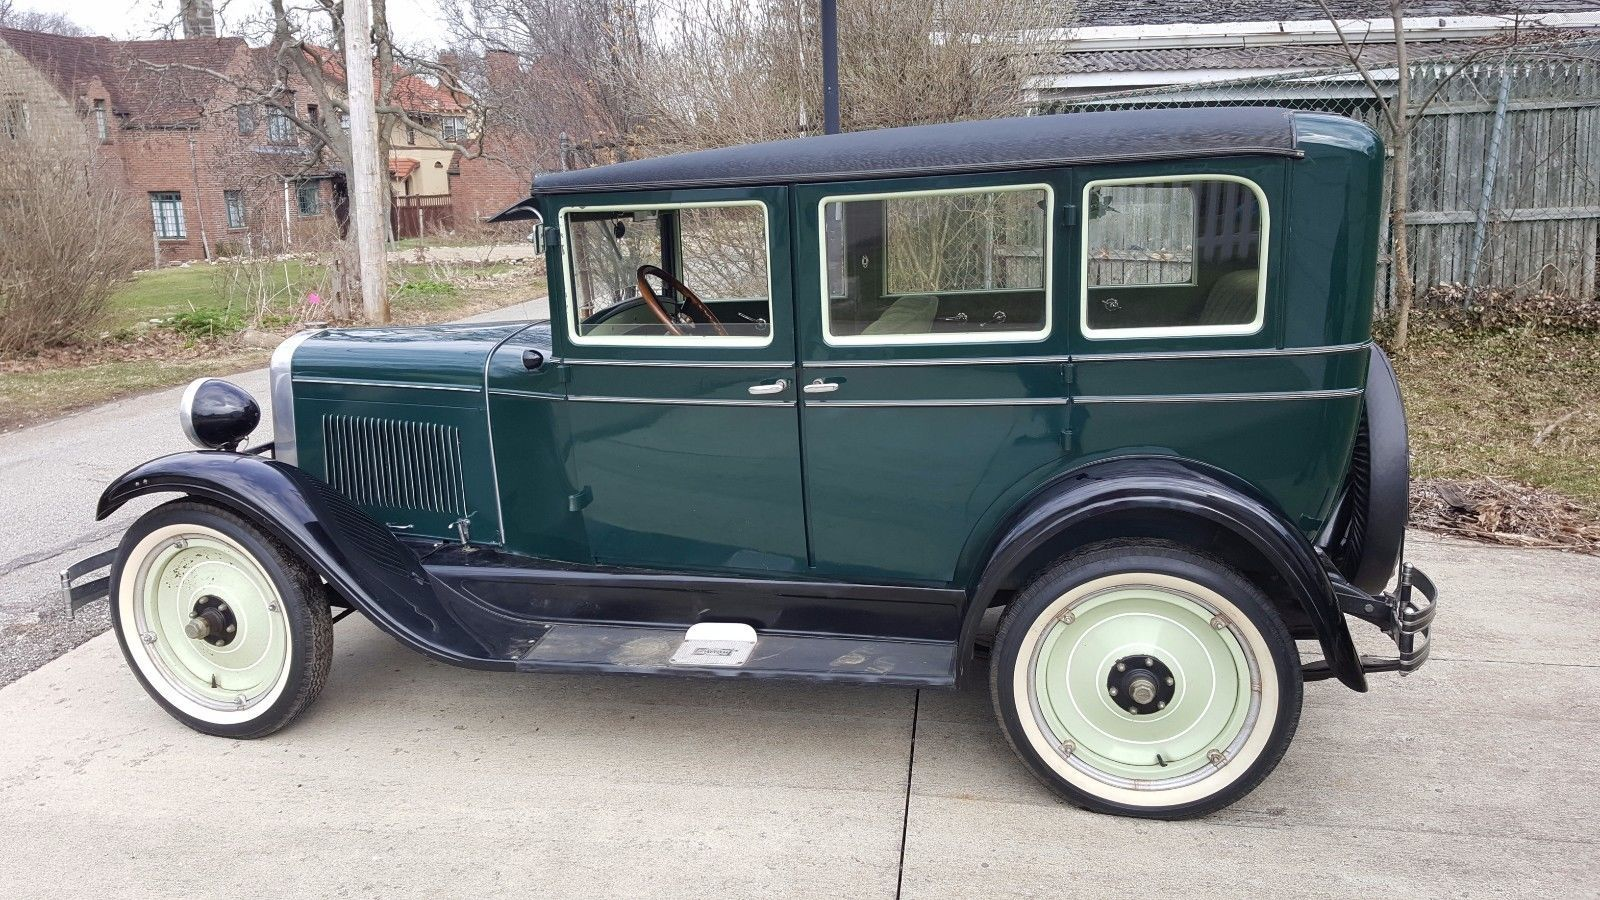 1928 Chevrolet Other   Chevrolet, Sedans and Cars